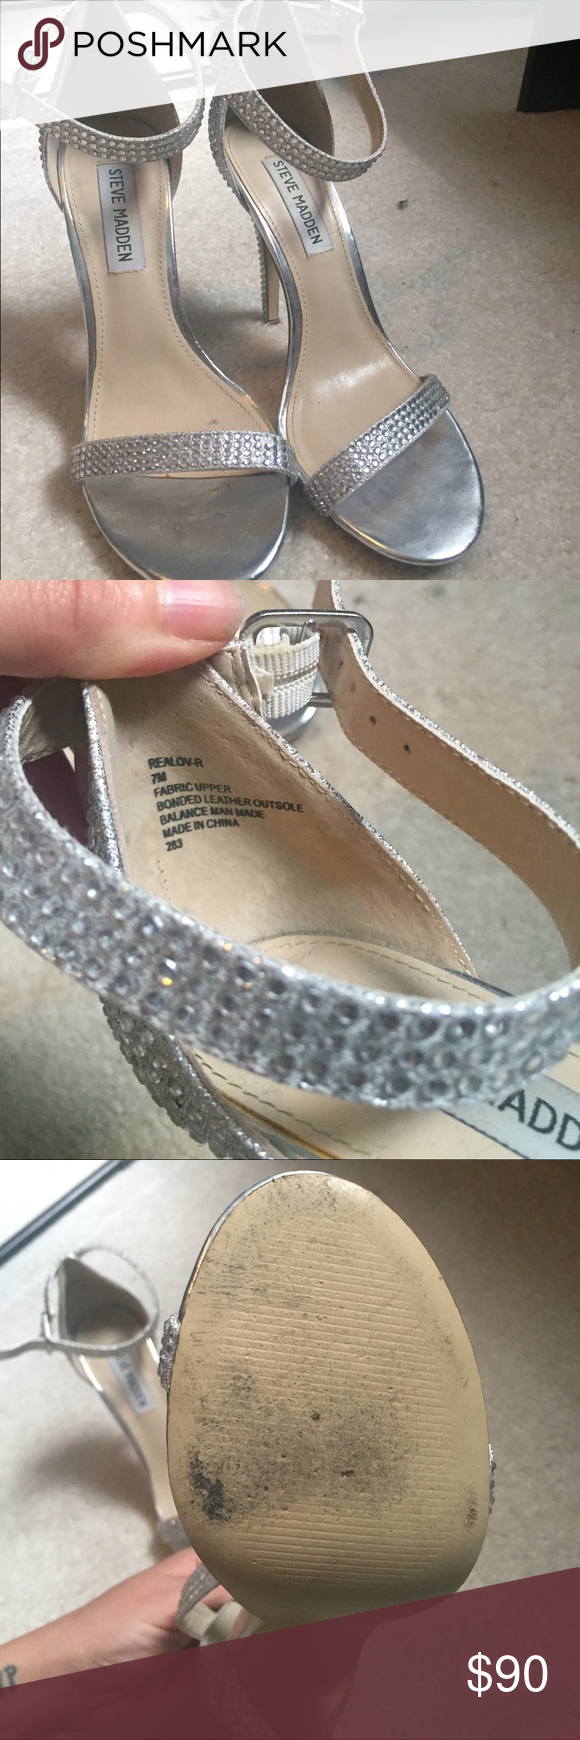 Steve Madden silver heels Steve Madden silver heel sandals. Sz 7 worn once. Excellent condition. Steve Madden Shoes Heels